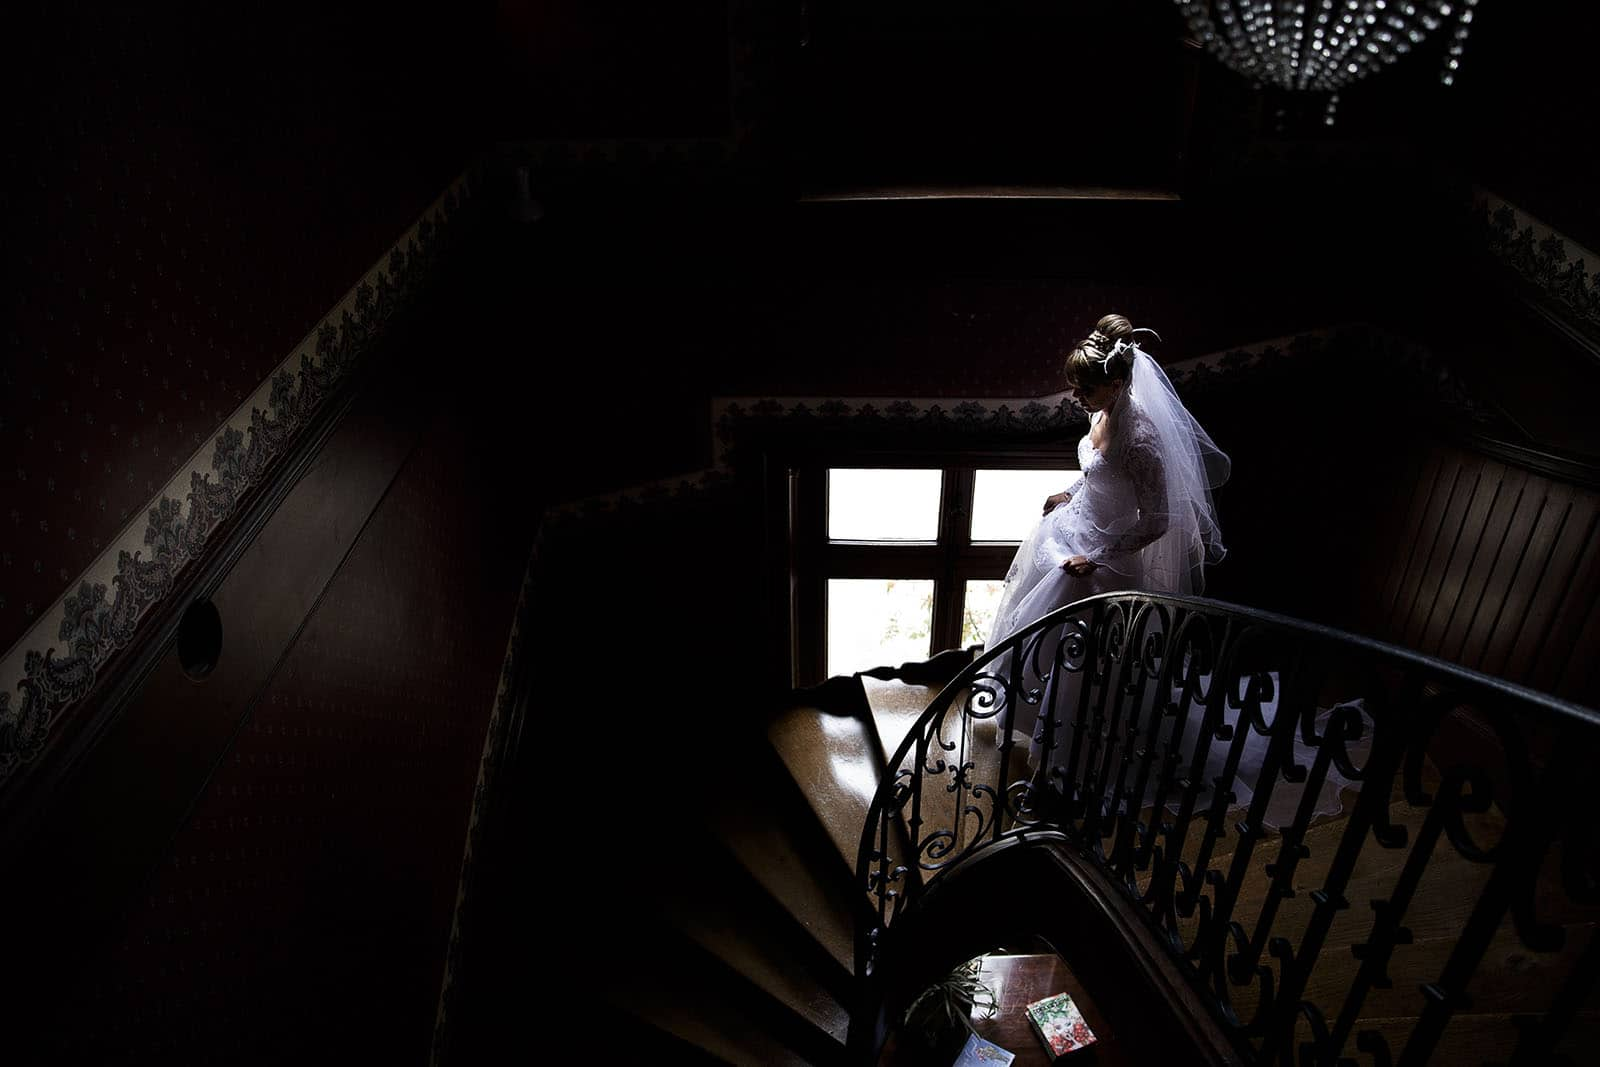 wedding at Clos des Tourelles wedding photographer at Chalon sur Saône. The bride down the stairs. Photo made by Castile ALMA wedding photographer in Chalon sur Saone at the clos des Tourelles.